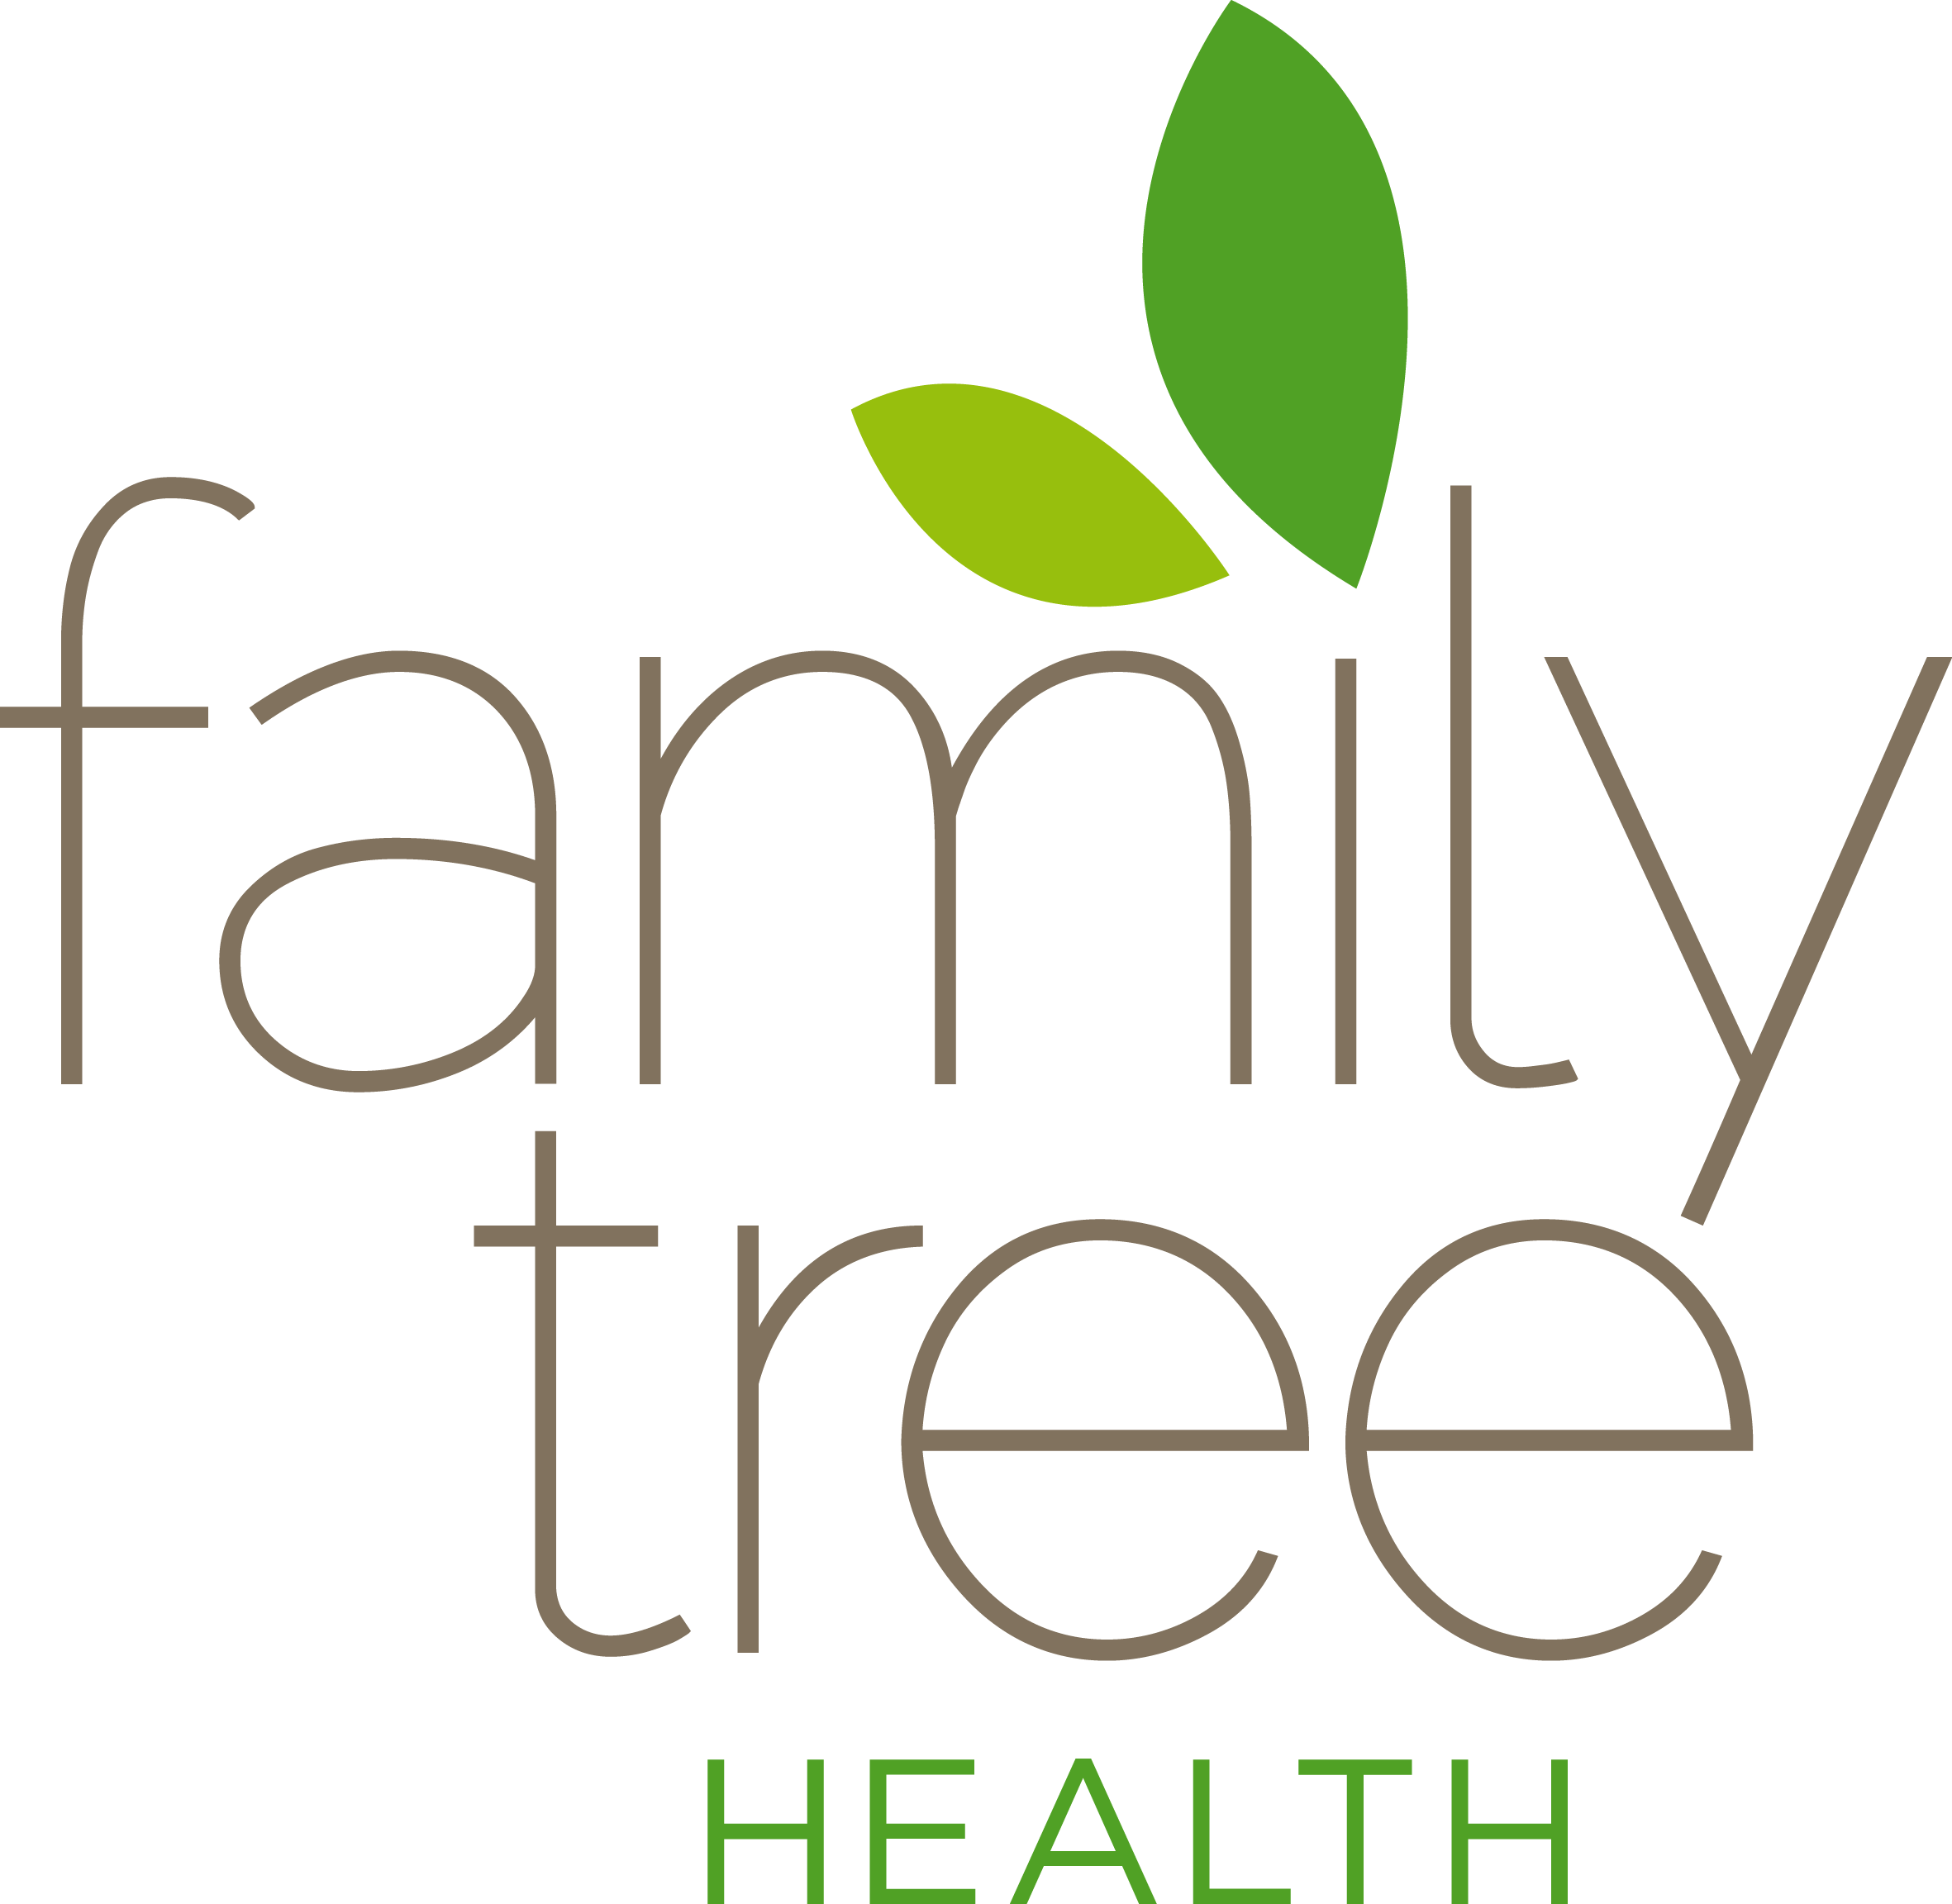 Family Tree Health